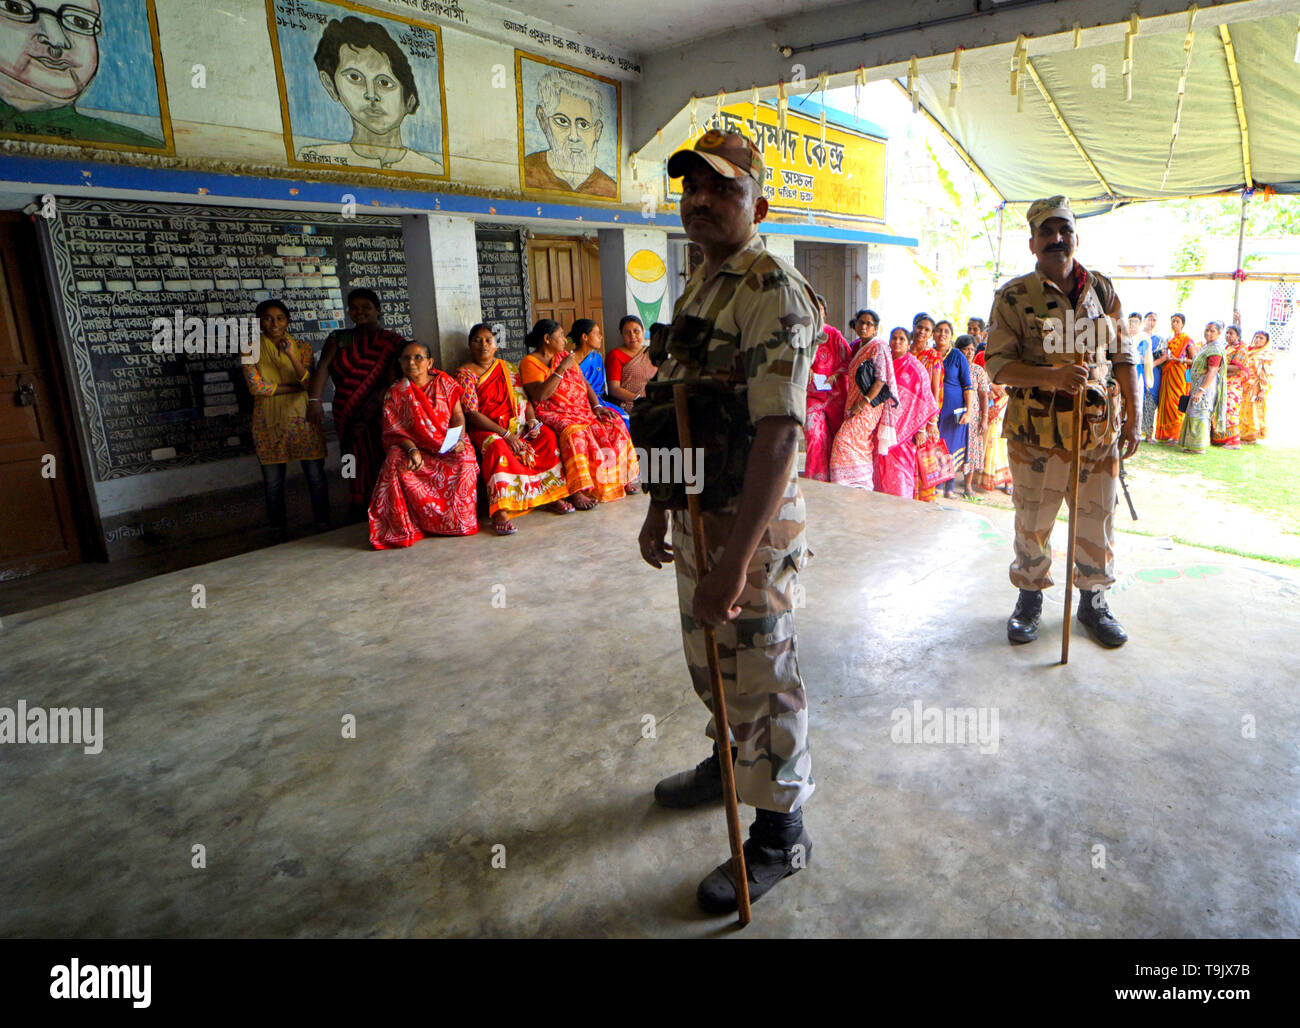 A CISF (Central Industrial Security Force) officers seen standing on guard at a polling station during the 7th Phase (Final Phase) of General Elections in Baruipur, west Bengal. Voting has begun for the 7th phase (final phase) elections in Baruipur, West Bengal. - Stock Image